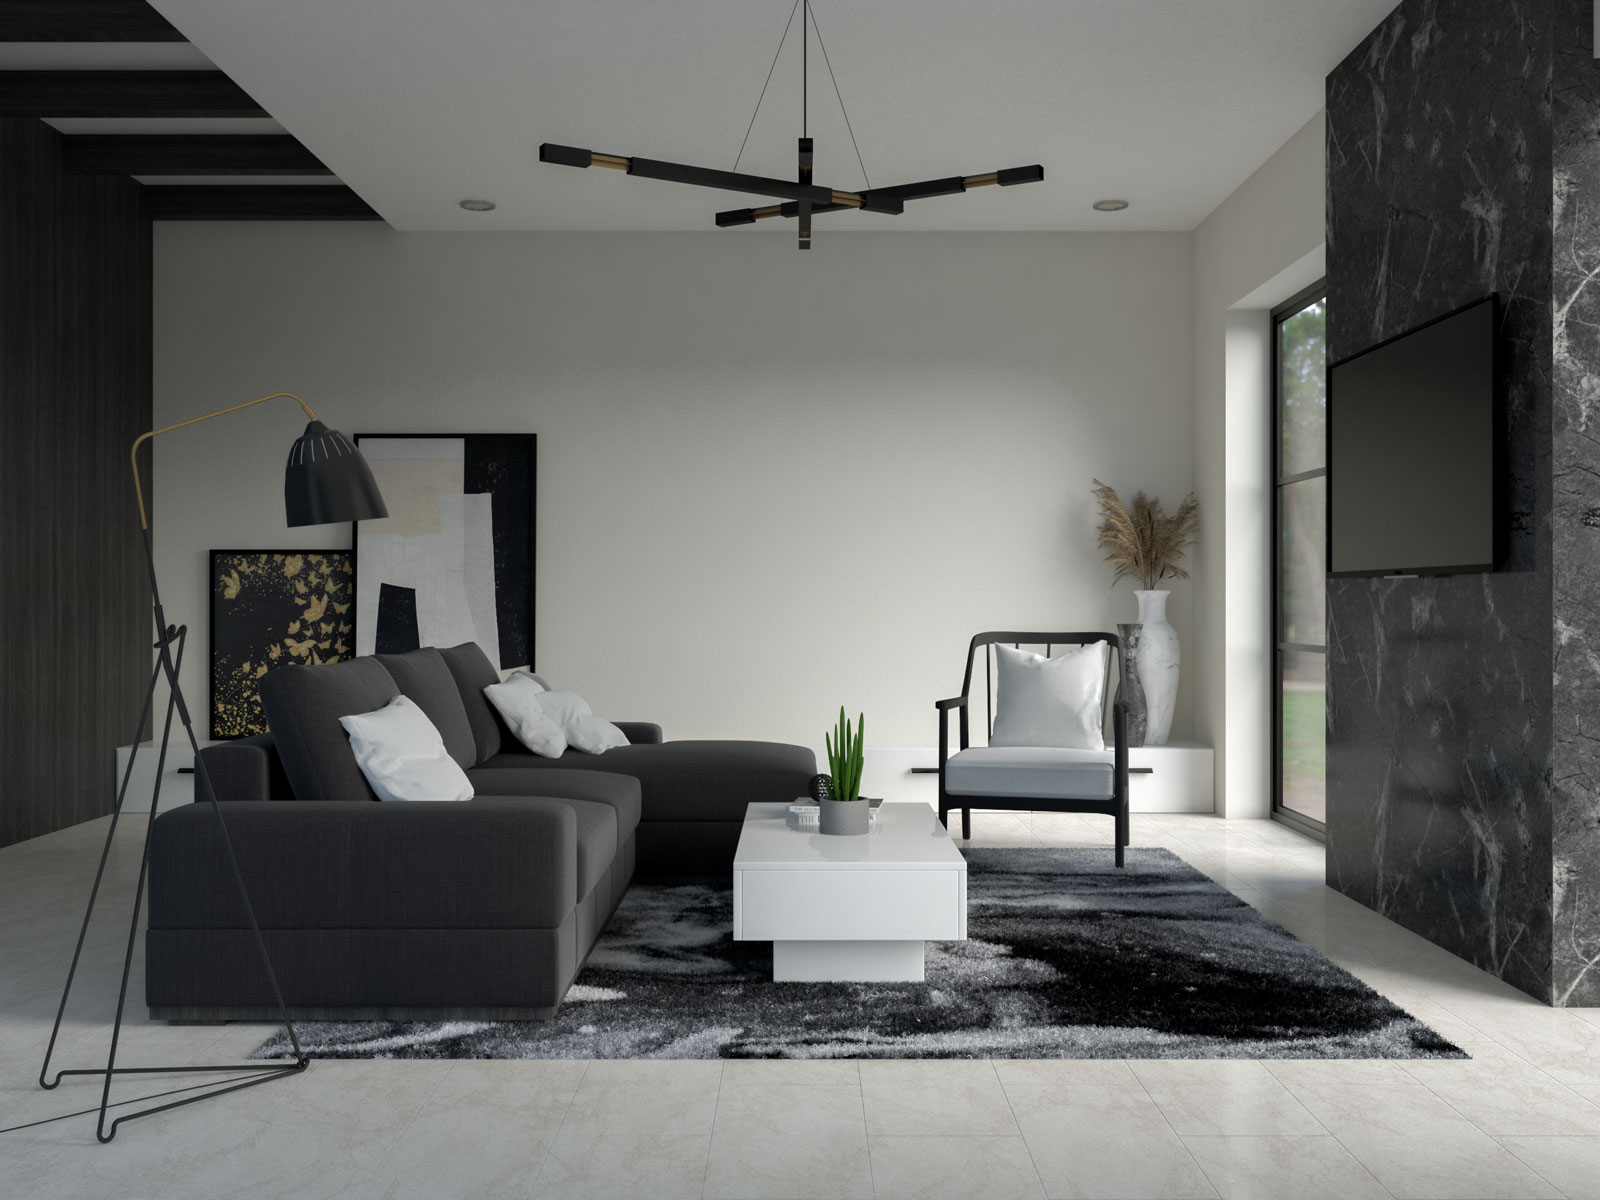 Alabaster walls with black and white furnishings